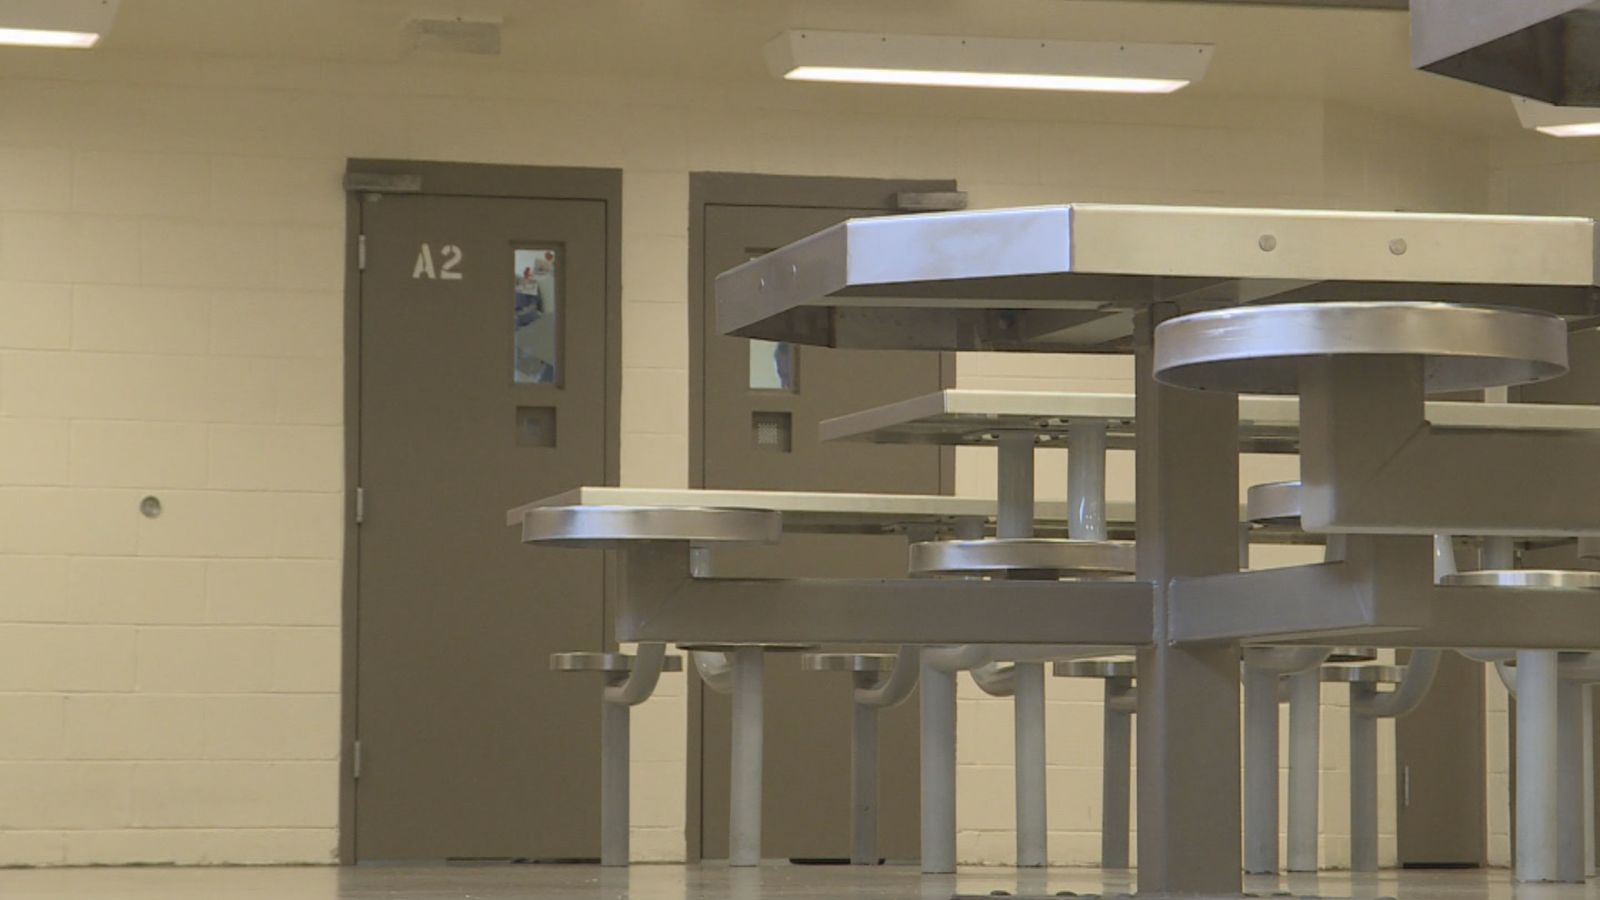 A 36-year-old man died Tuesday while in the custody of the Davis County Sheriff's Office at the county jail, shown here. It is the tenth death there since 2016. (File photo: KUTV)